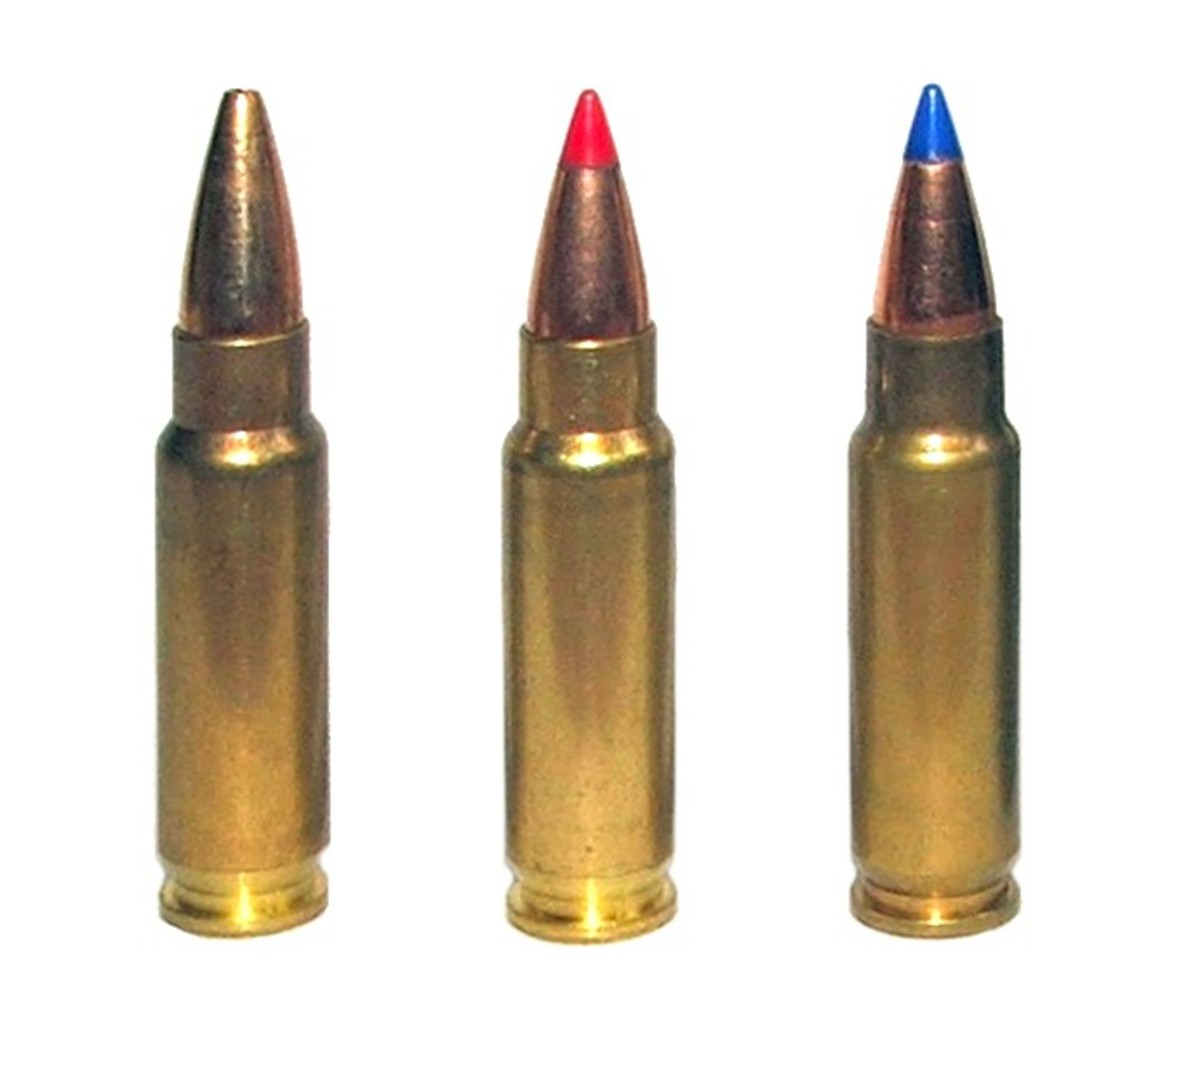 5.7×28mm SS195LF, SS196SR (Red), and SS197SR (Blue) respectively